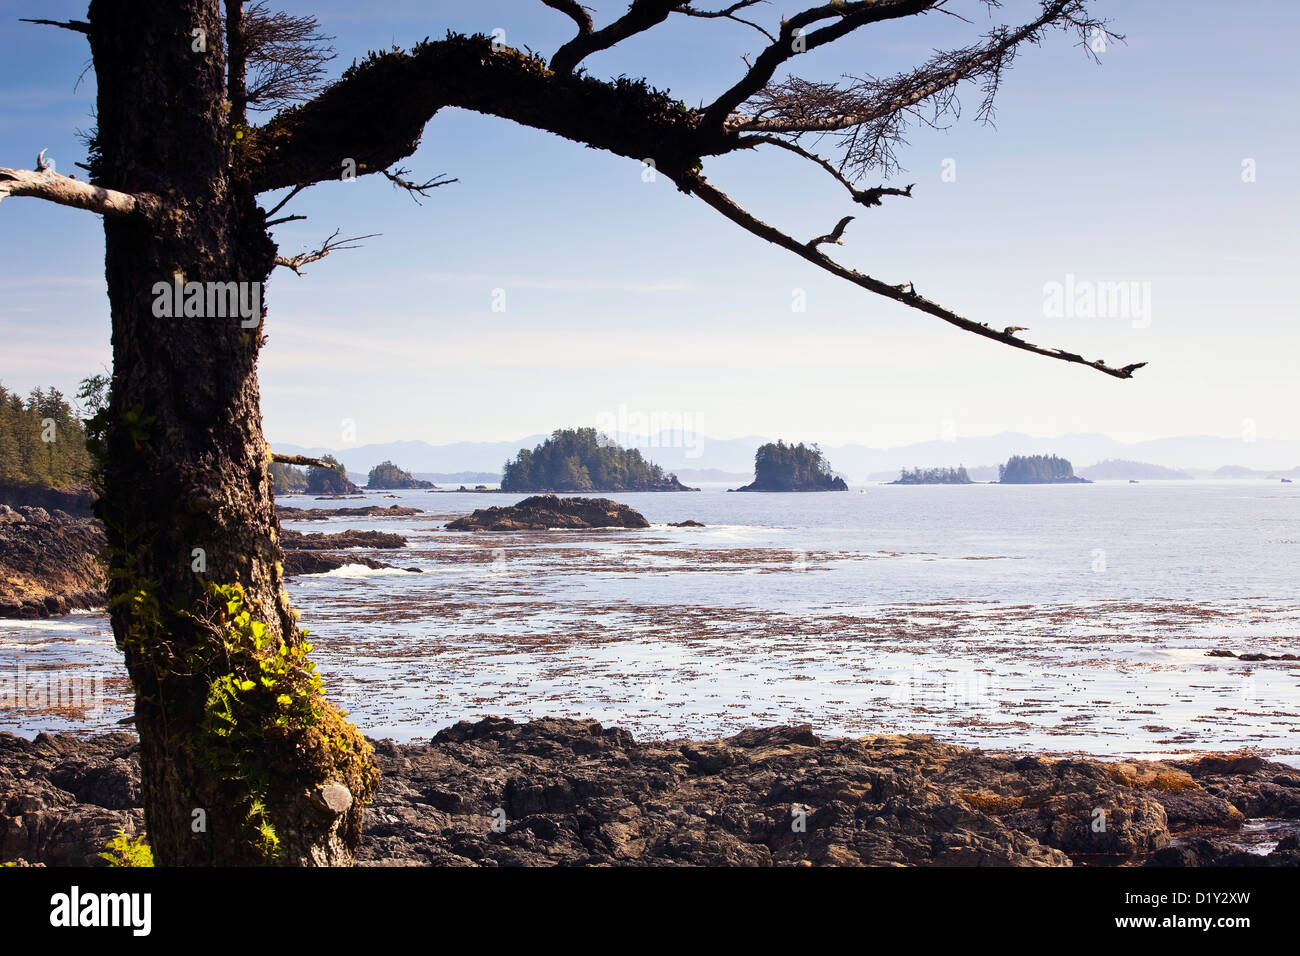 Broken Islands viewed from the Wild Pacific Trail on Vancouver Island, Ucluelet, British Columbia, Canada. - Stock Image